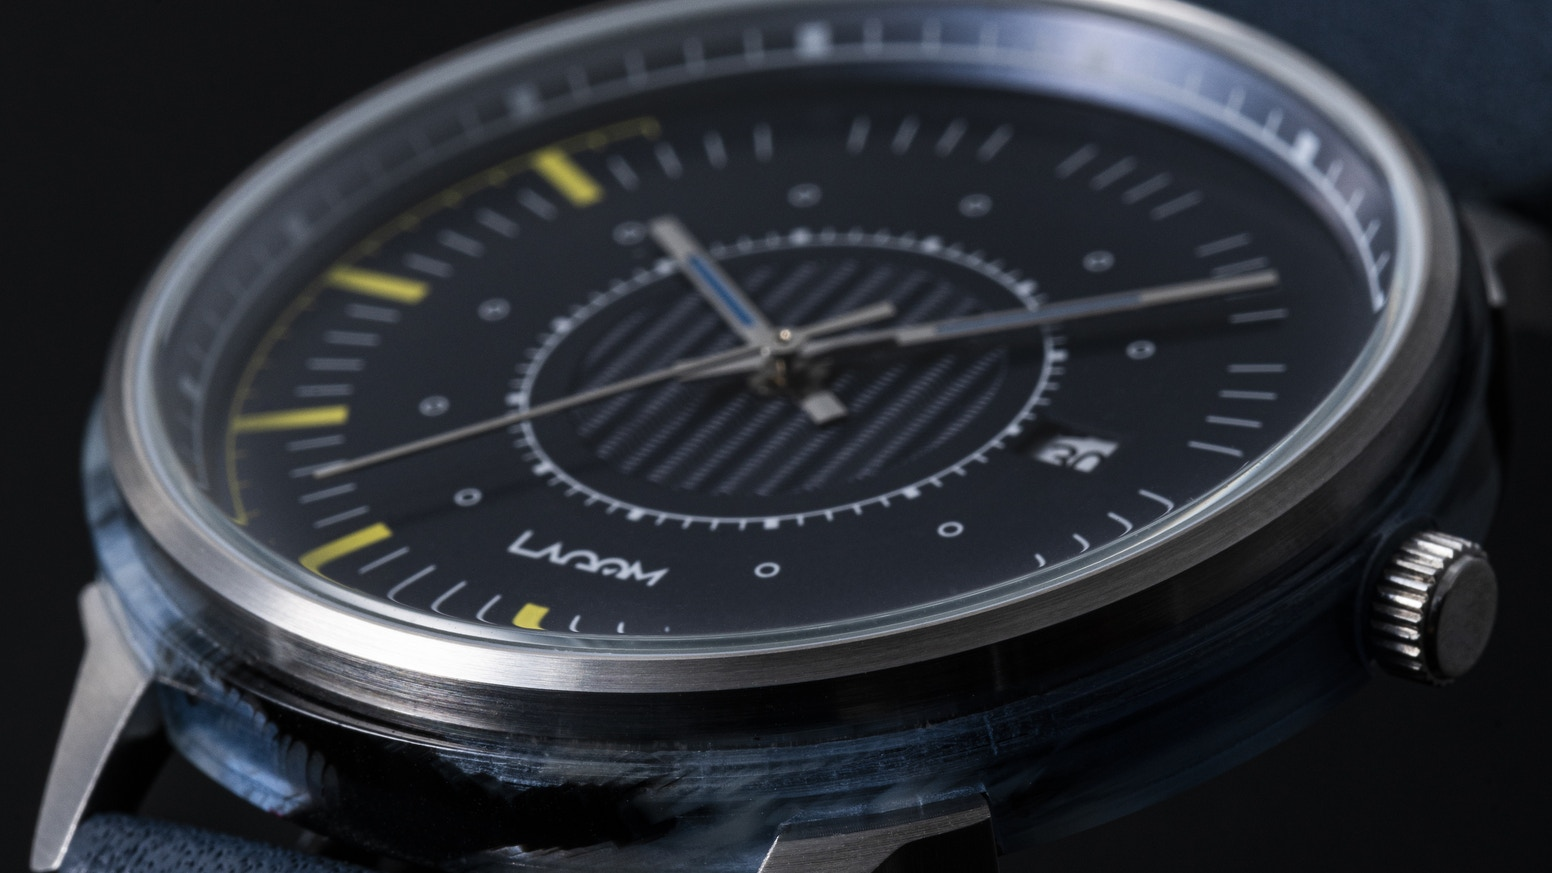 A watch with a uniquely patterned acetate outer case; spreading our balanced, fuss-free life philosophy to the world – LAGOM Watches